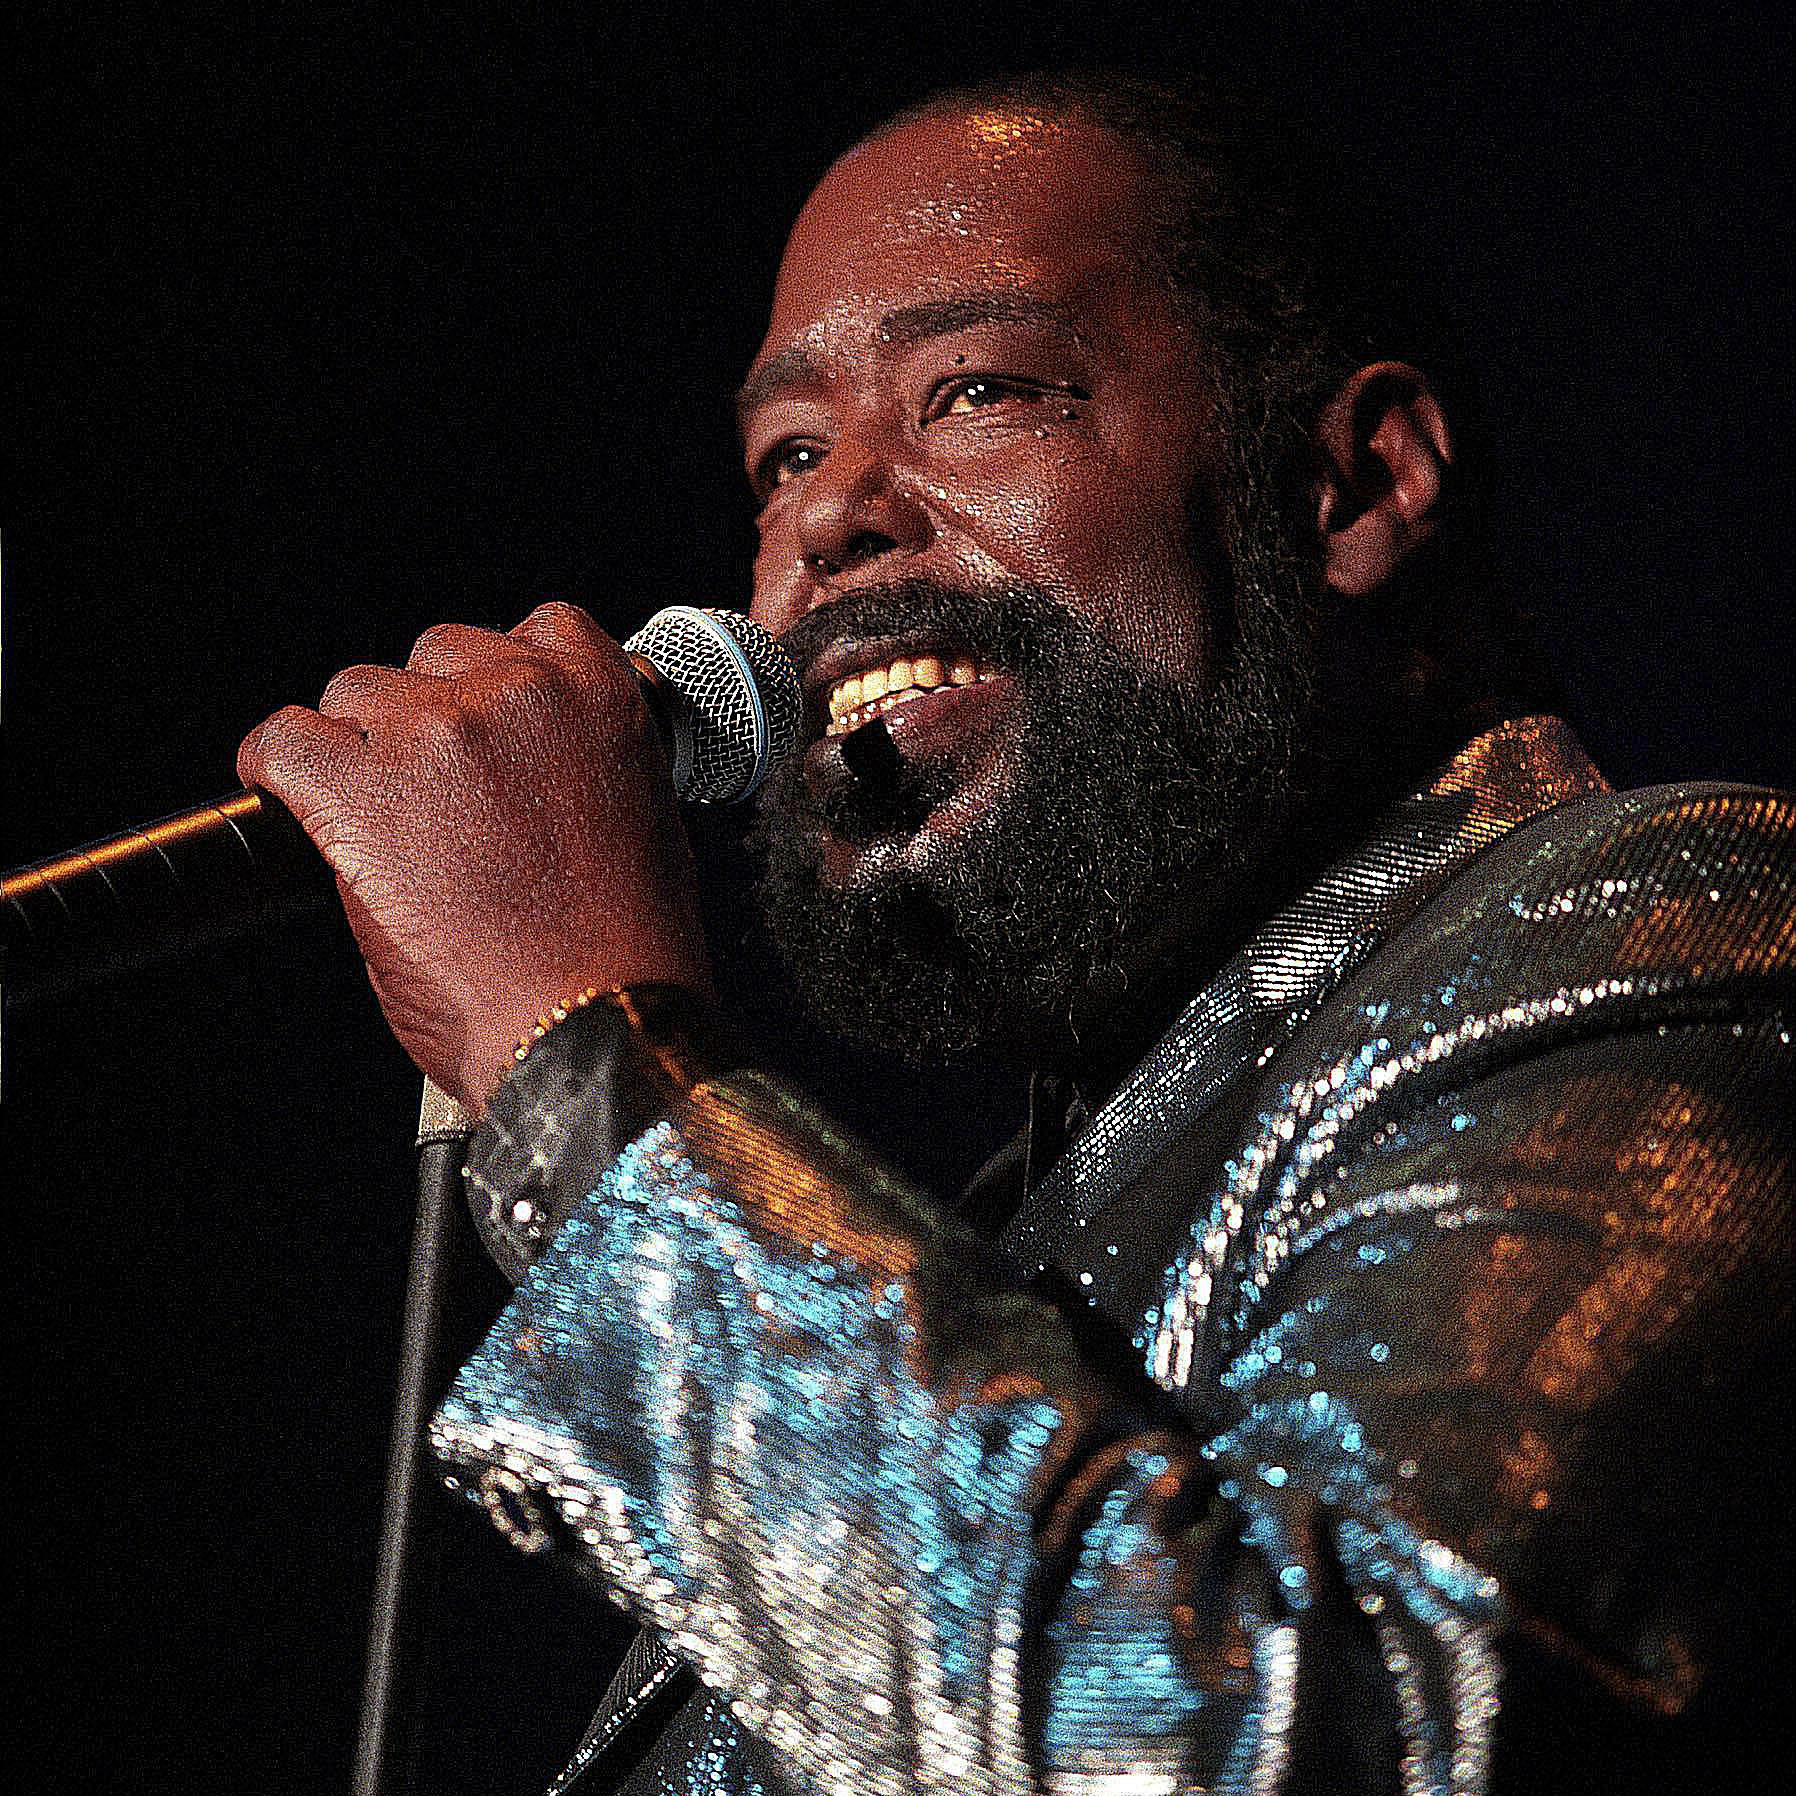 Portrait of Barry White during a performance